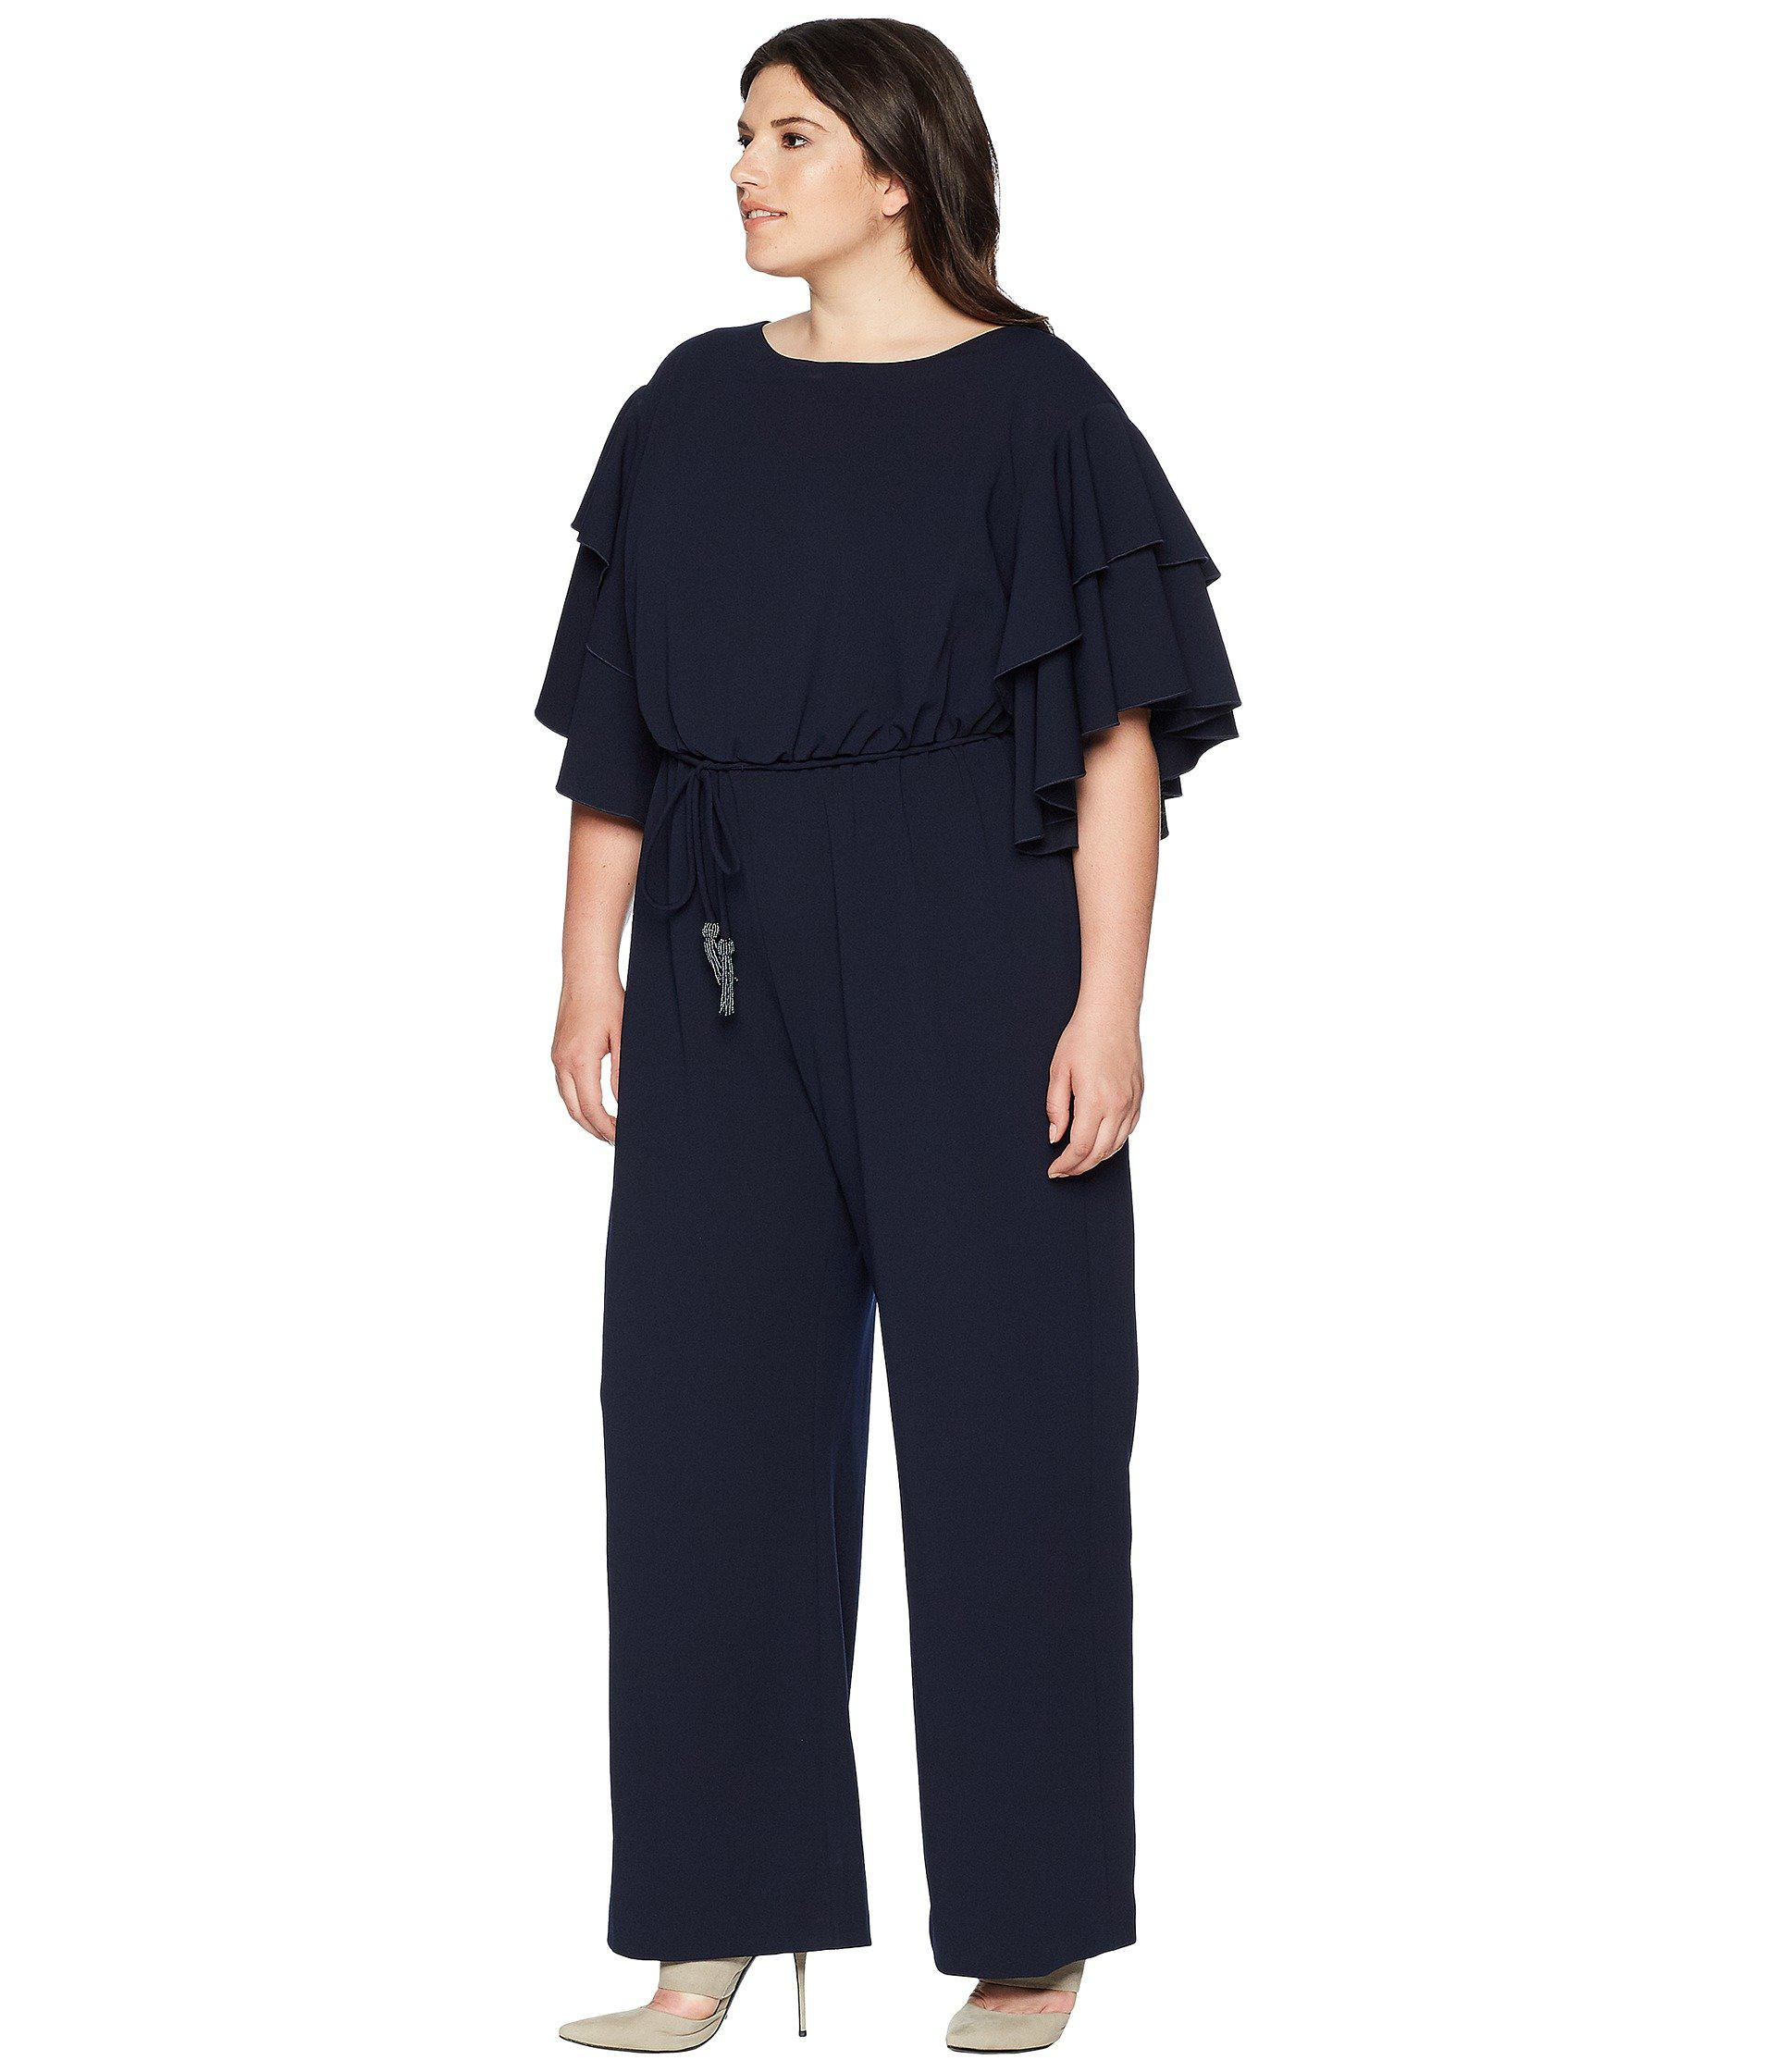 6c131c4221b9 Lyst - Adrianna Papell Plus Size Blouson Ruffle Sleeve Jumpsuit in Blue -  Save 43%